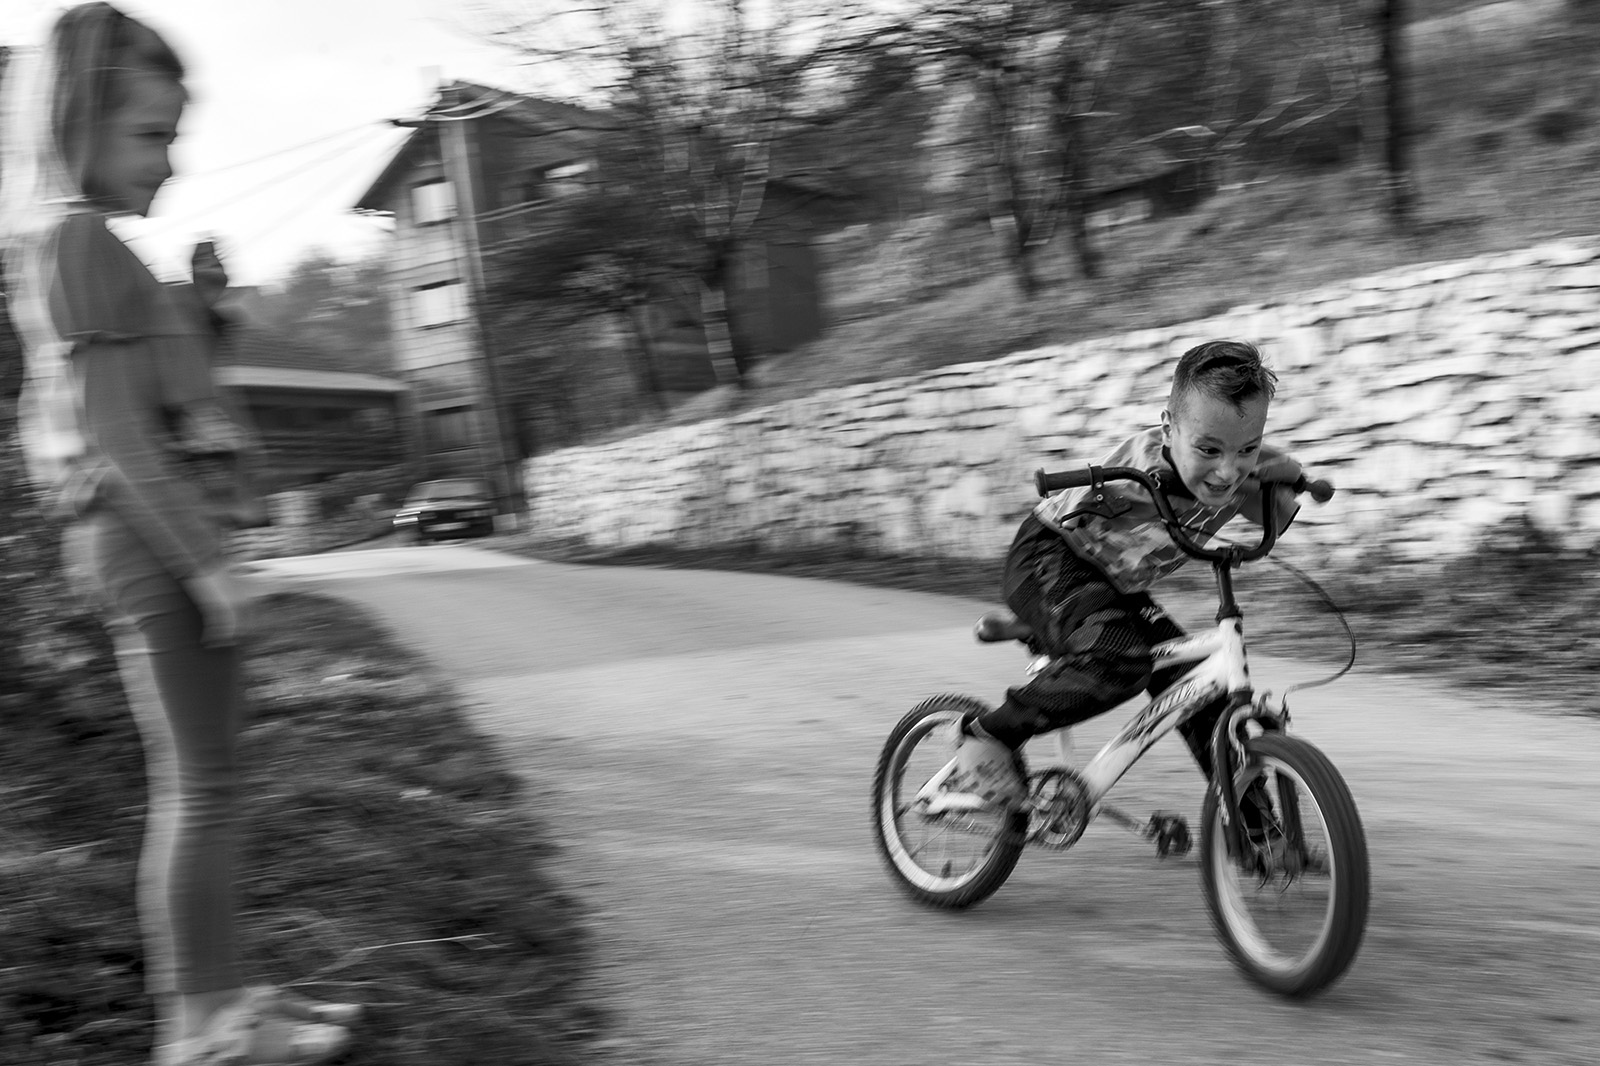 Ismail shows his sister how to drift on a bicycle on the road next to their house in Zenica.